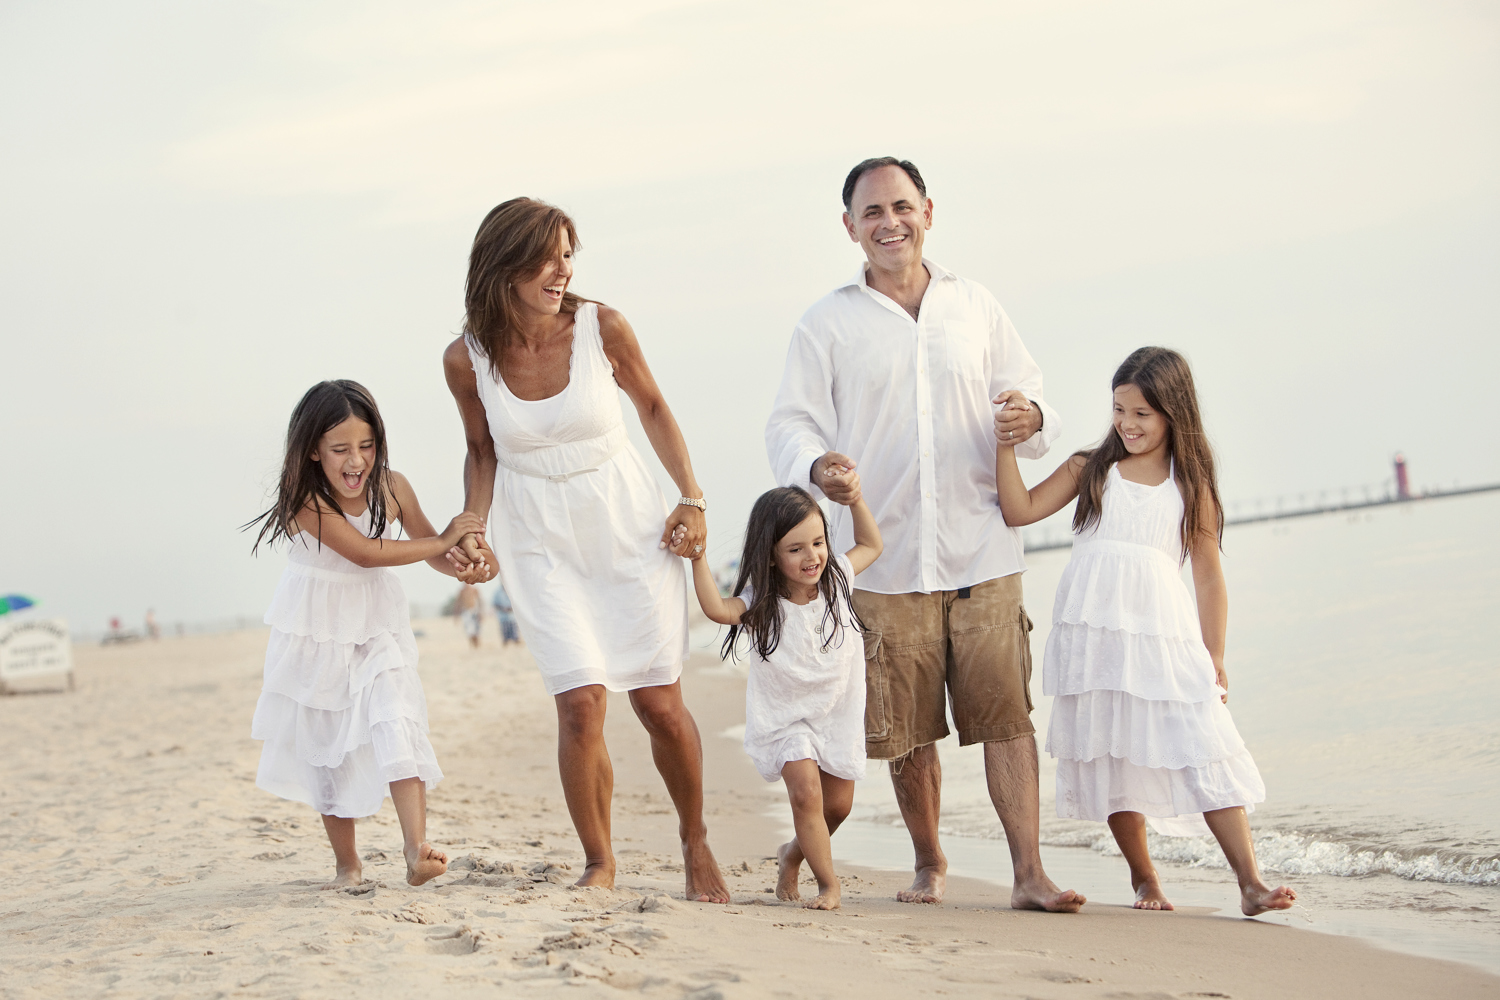 family portrait on beach wearing white